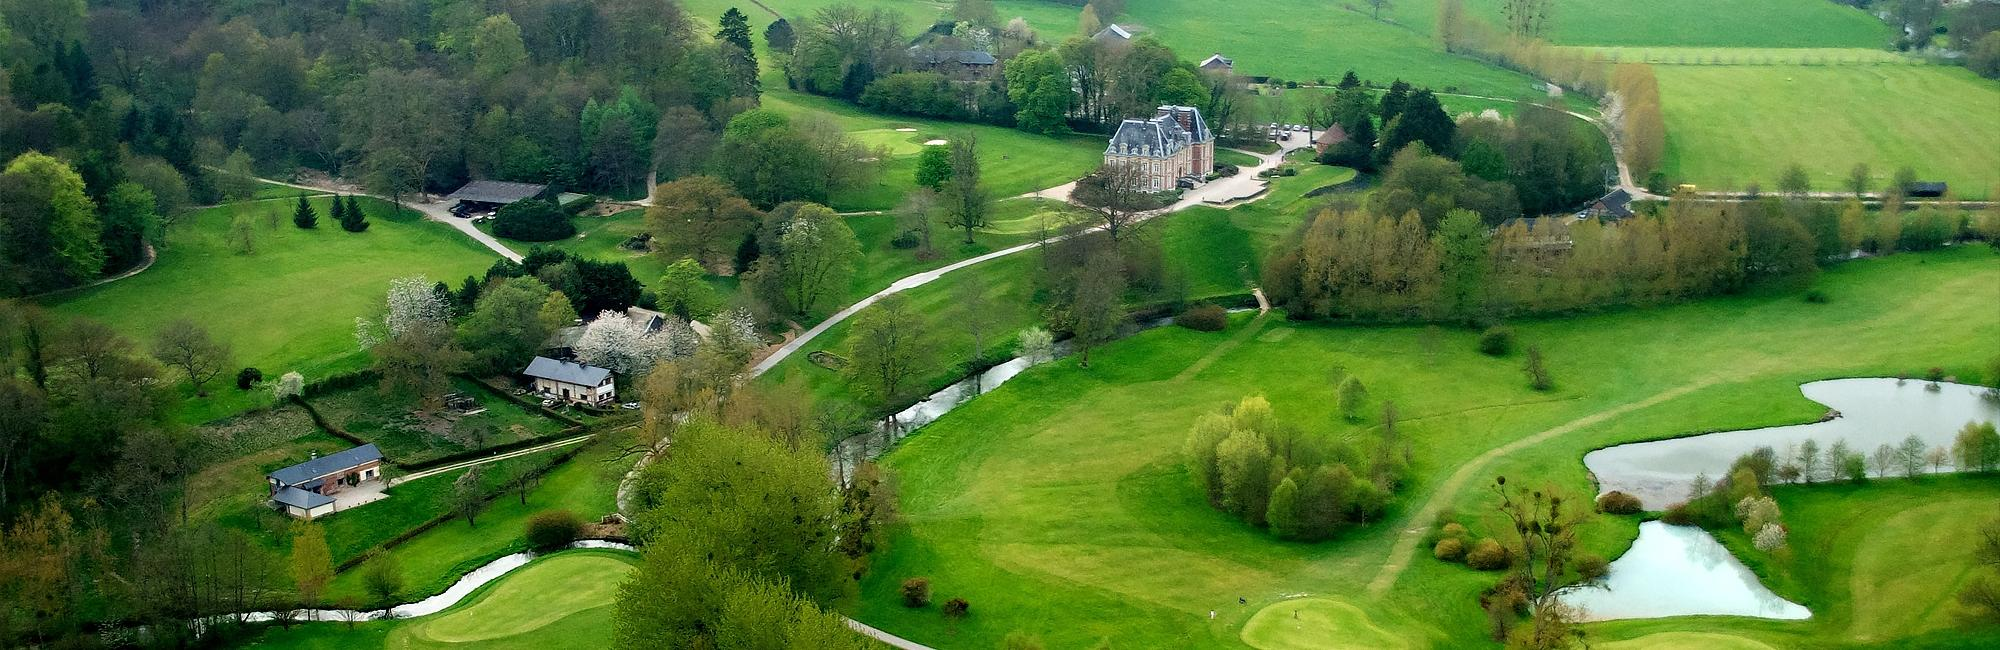 Saint-Saens has lots of the most popular golf course around Normandy